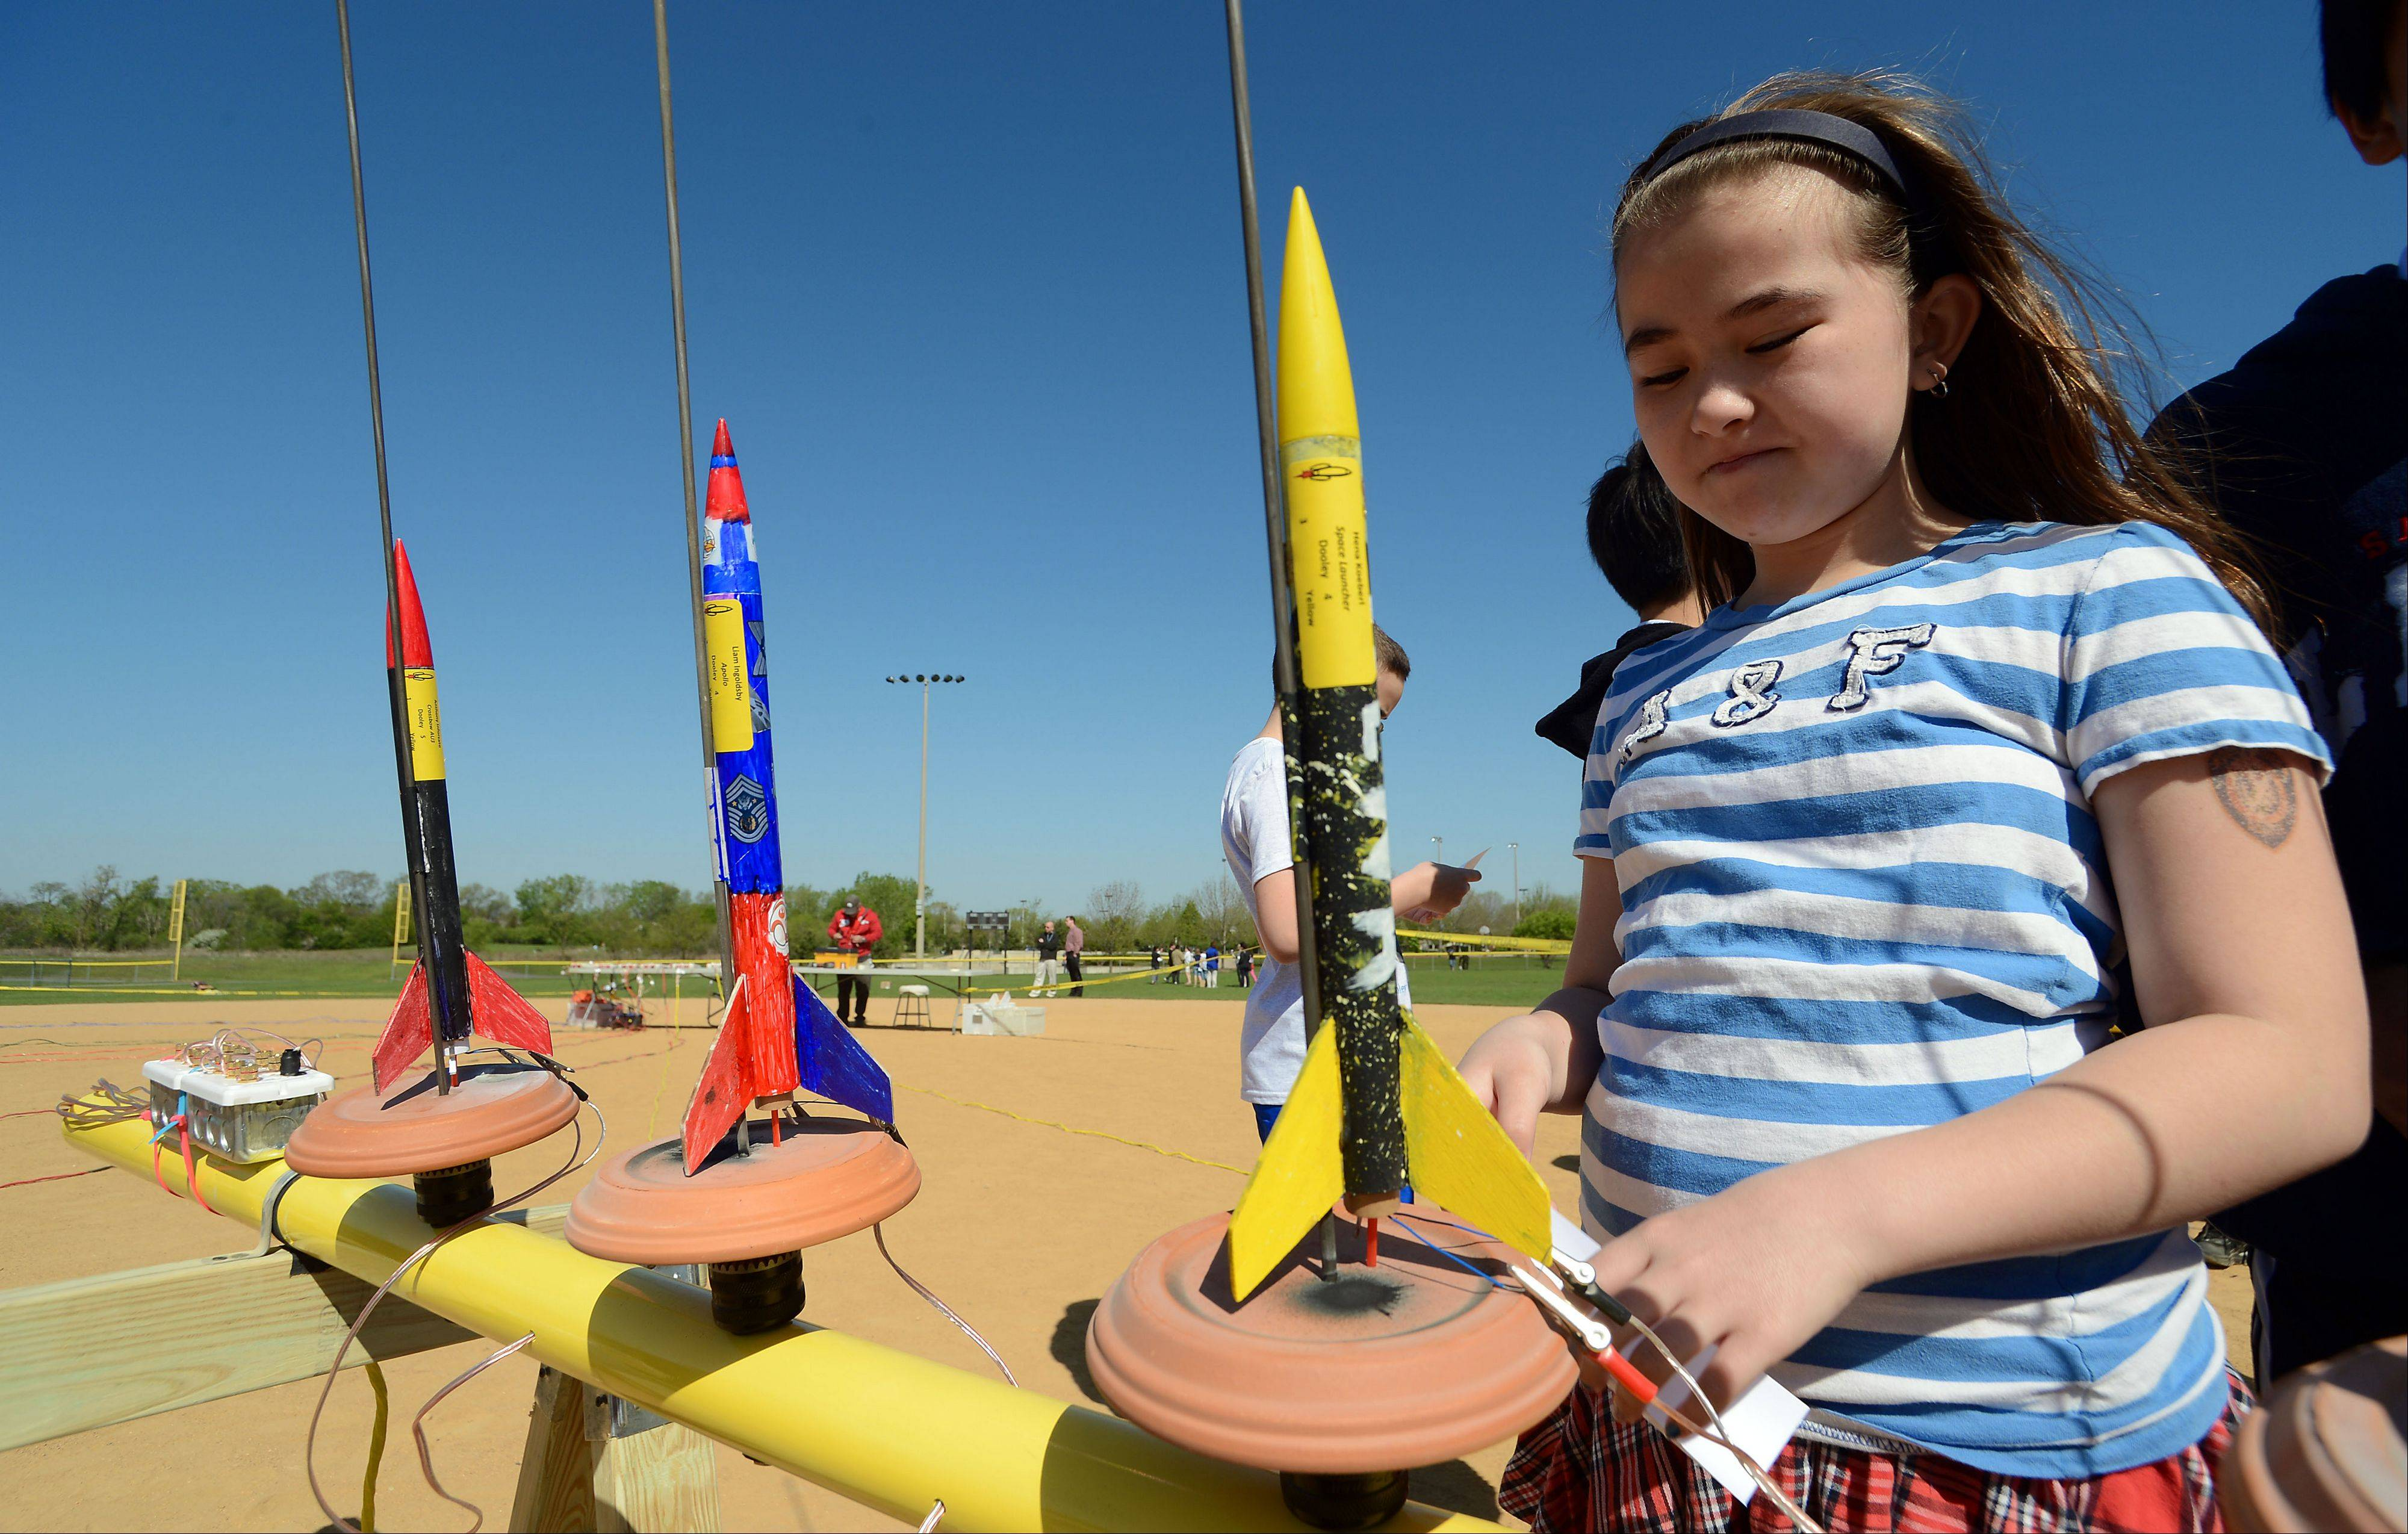 Hena Koeberl, 10, a fourth grader at Thomas Dooley Elementary School in Schaumburg, hooks up her rocket called the Space Launcher at Olympic Park in Schaumburg Tuesday. Her rocket was one of 450 rockets that took to the sky as part of Schaumburg Township Elementary District 54's rocket launch day.